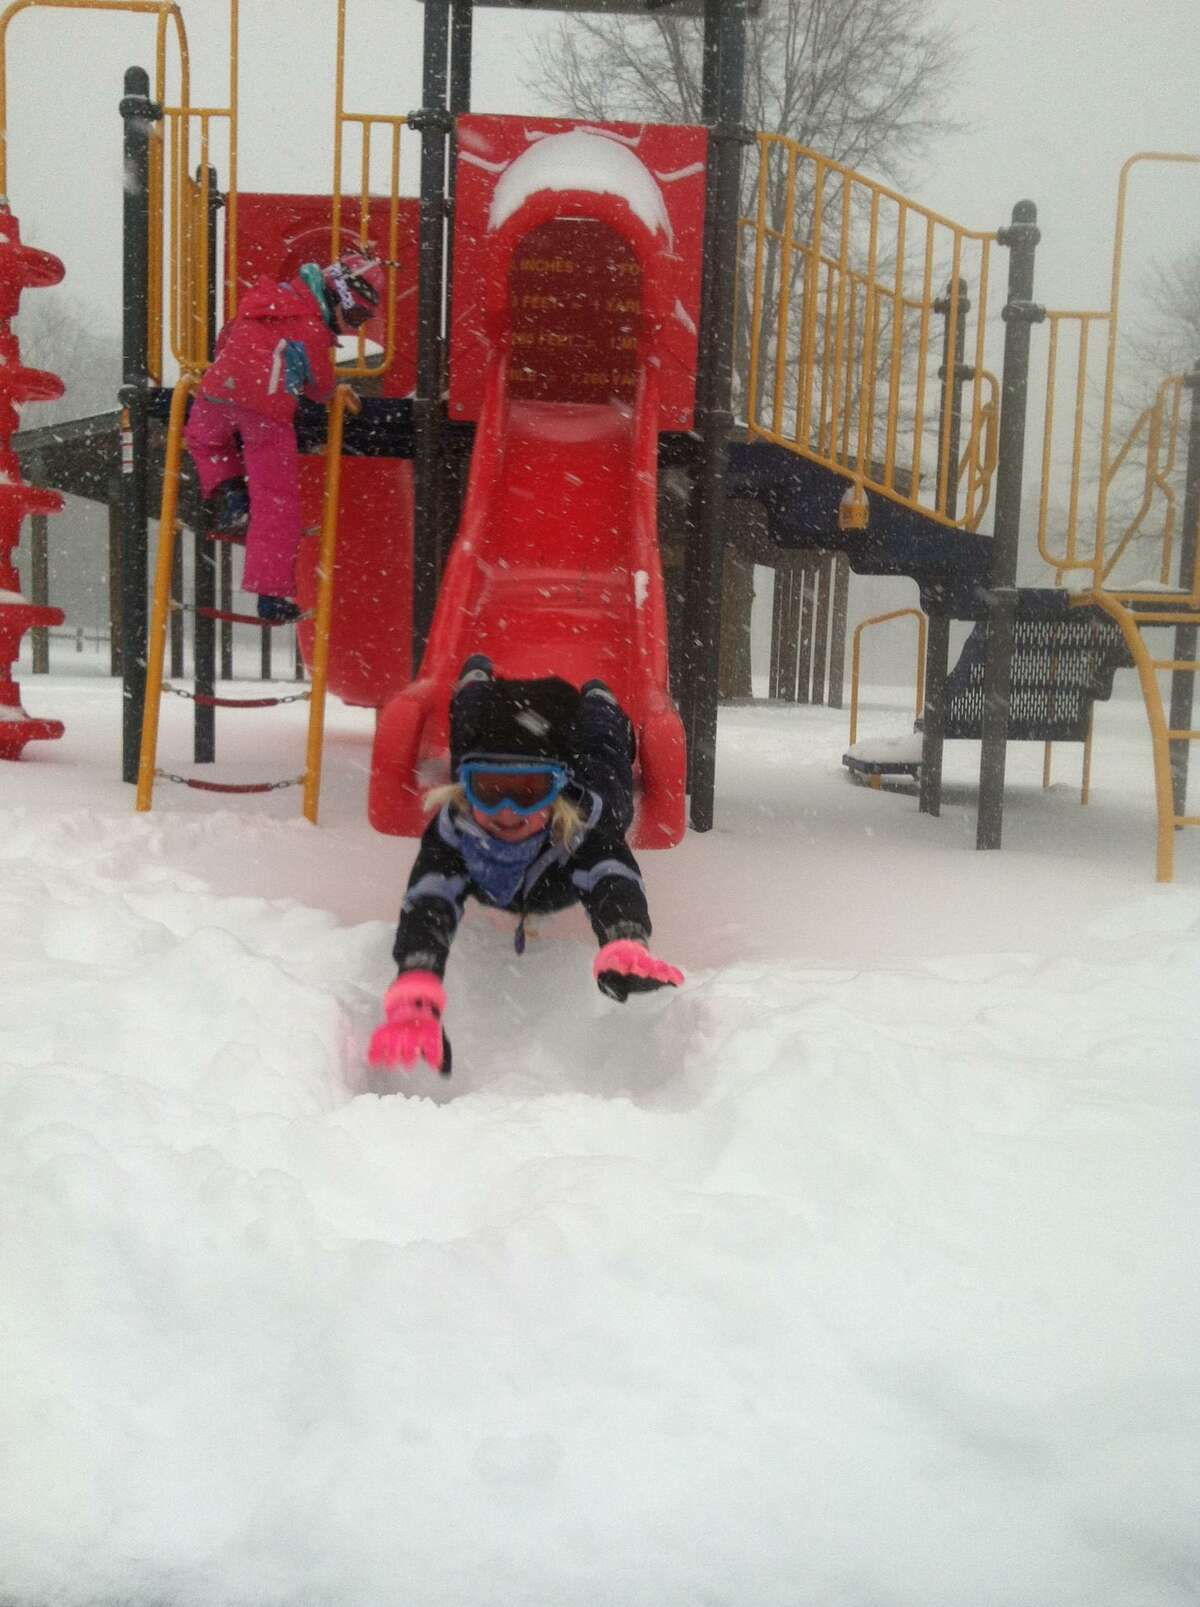 4-year-old Lily spends a snow day off from school on a makeshift luge run at Avon Crest Town Park in Niskayuna. (Photo provided by Betsy Sandberg)